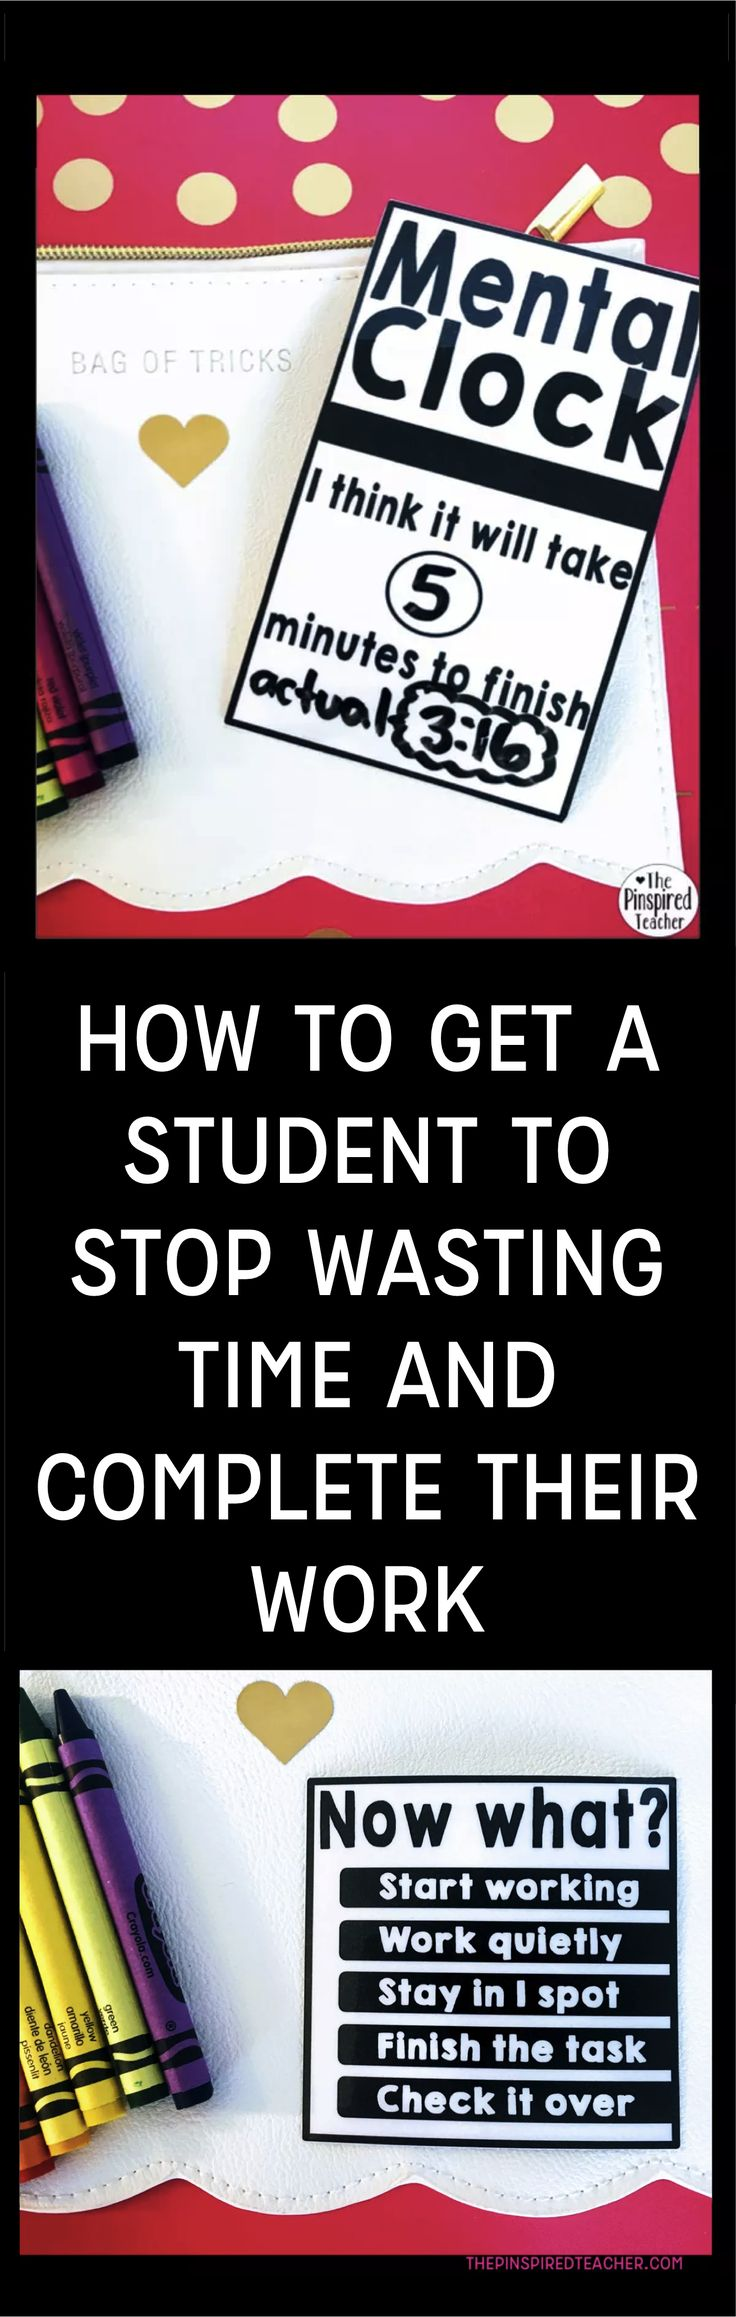 How to get a student to stop wasting time and complete their work